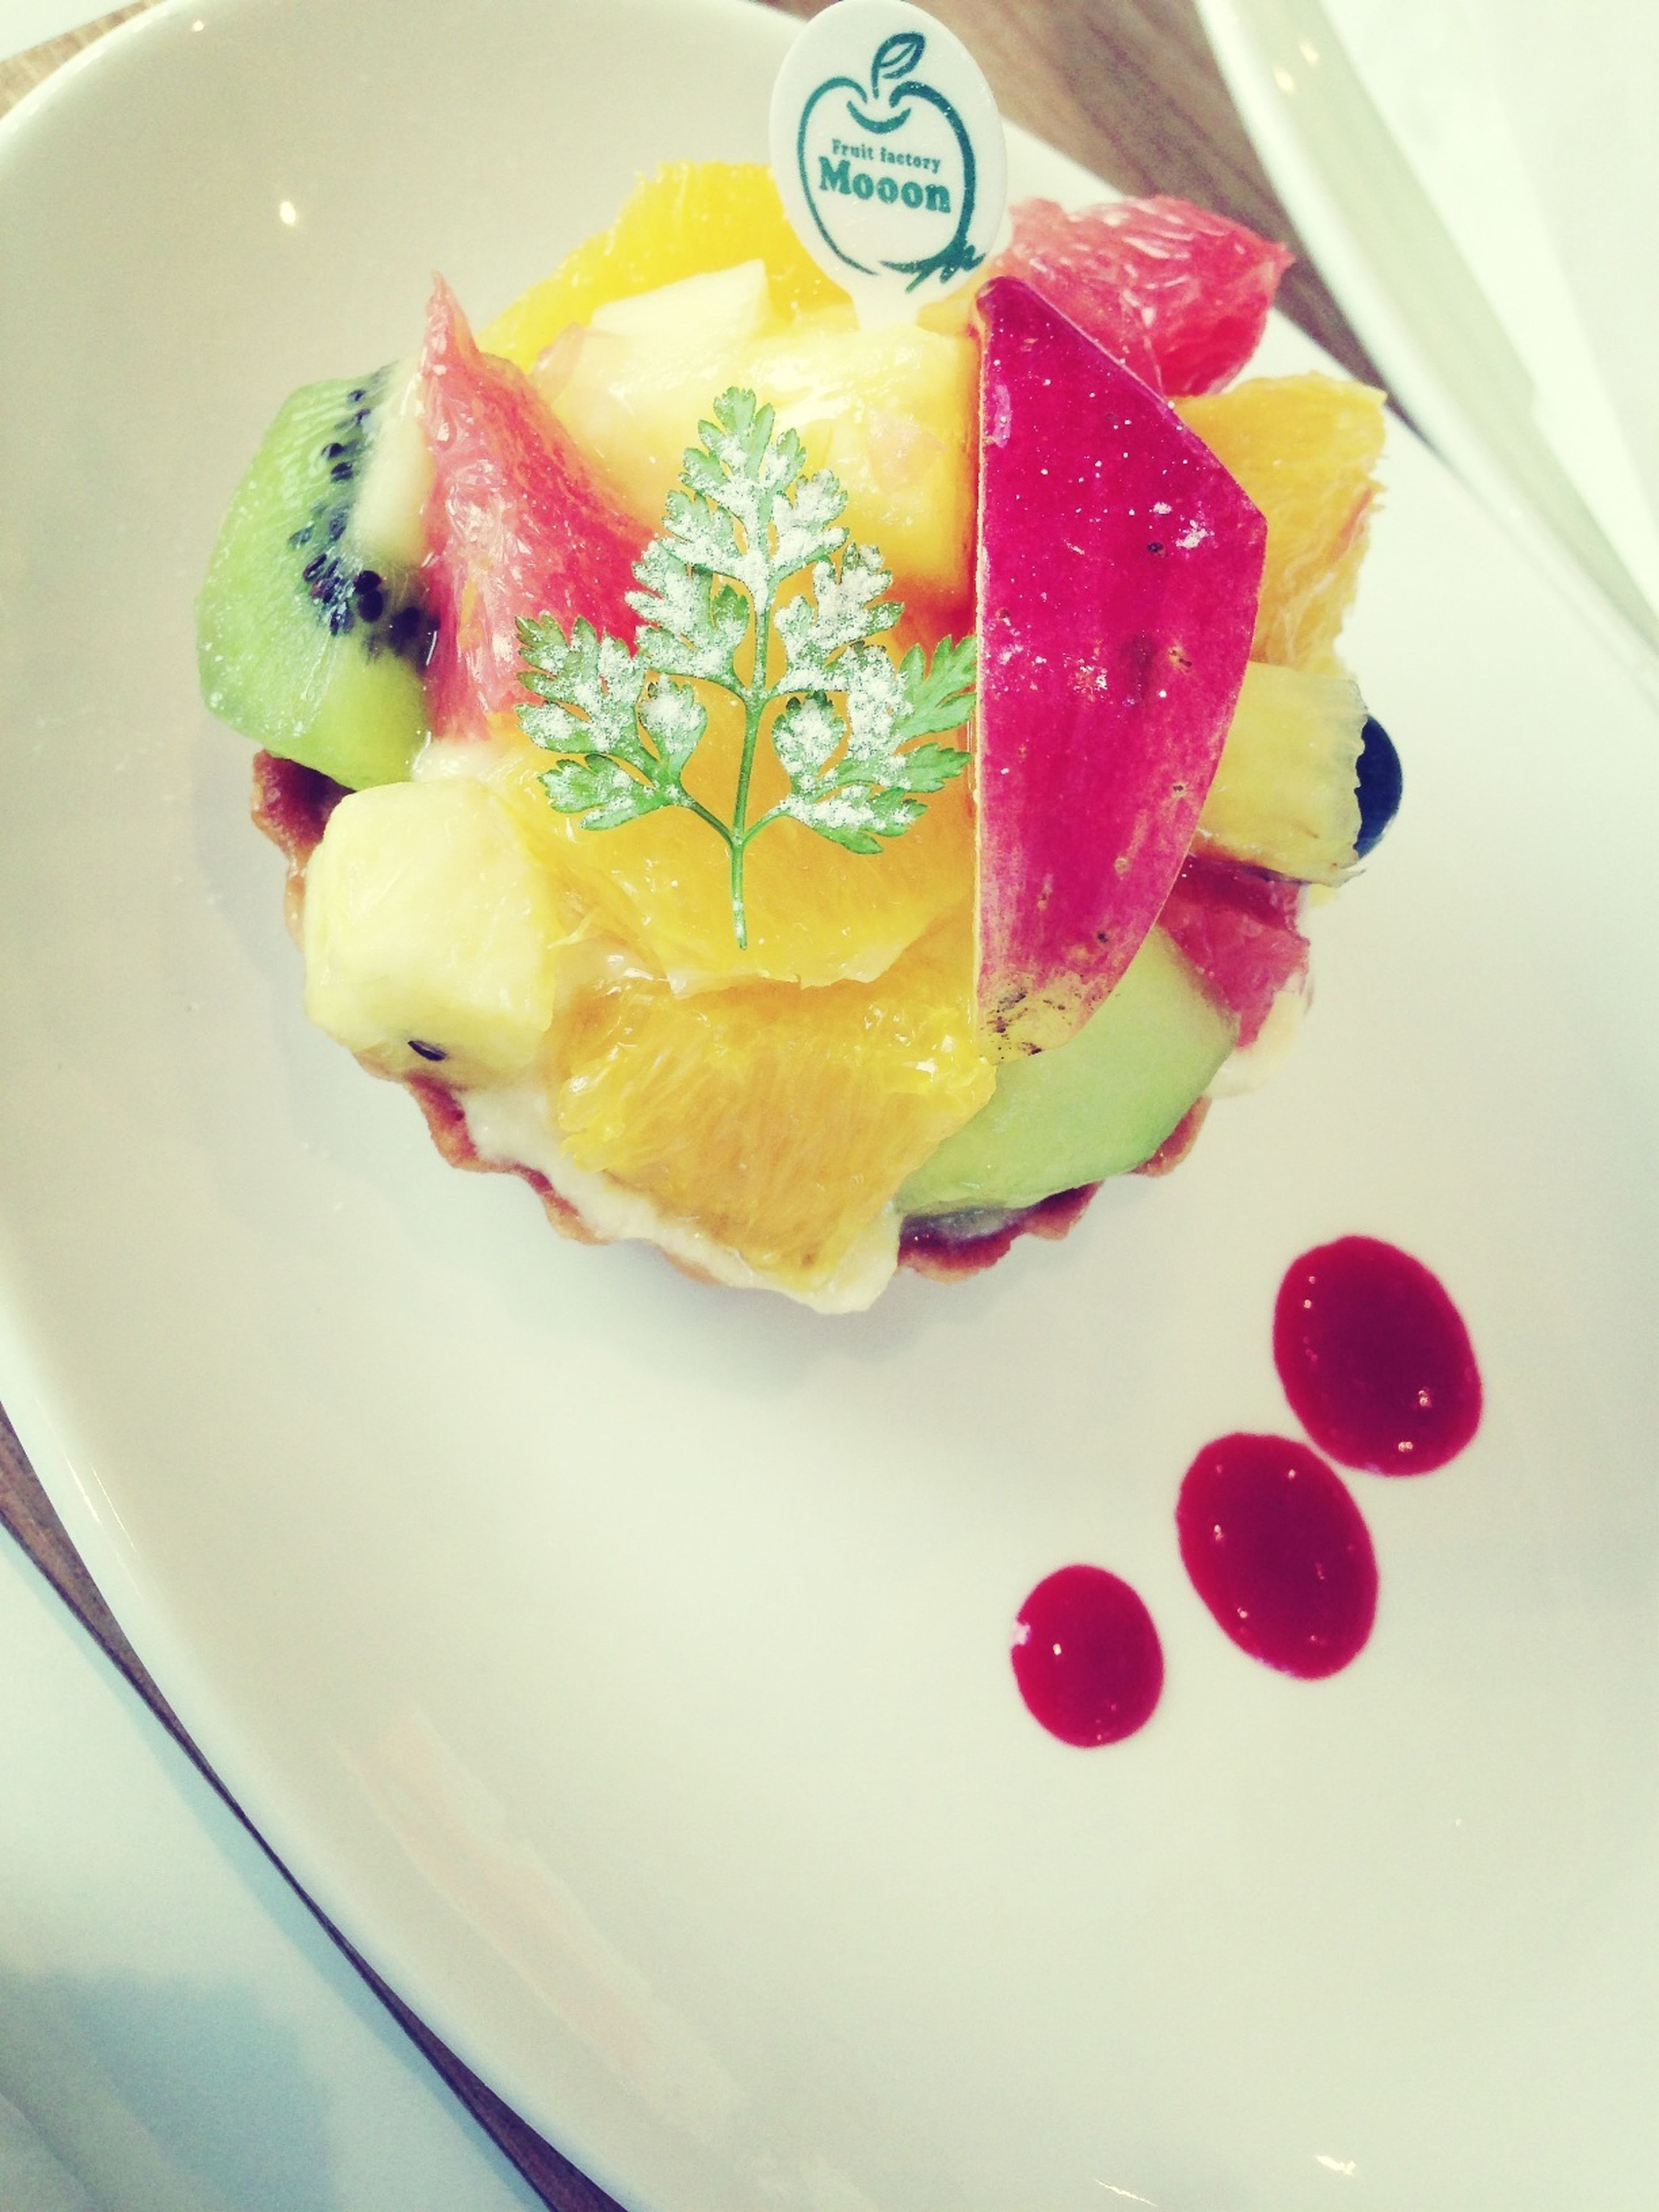 food and drink, food, indoors, freshness, sweet food, plate, fruit, still life, ready-to-eat, dessert, indulgence, close-up, healthy eating, high angle view, strawberry, slice, cake, table, temptation